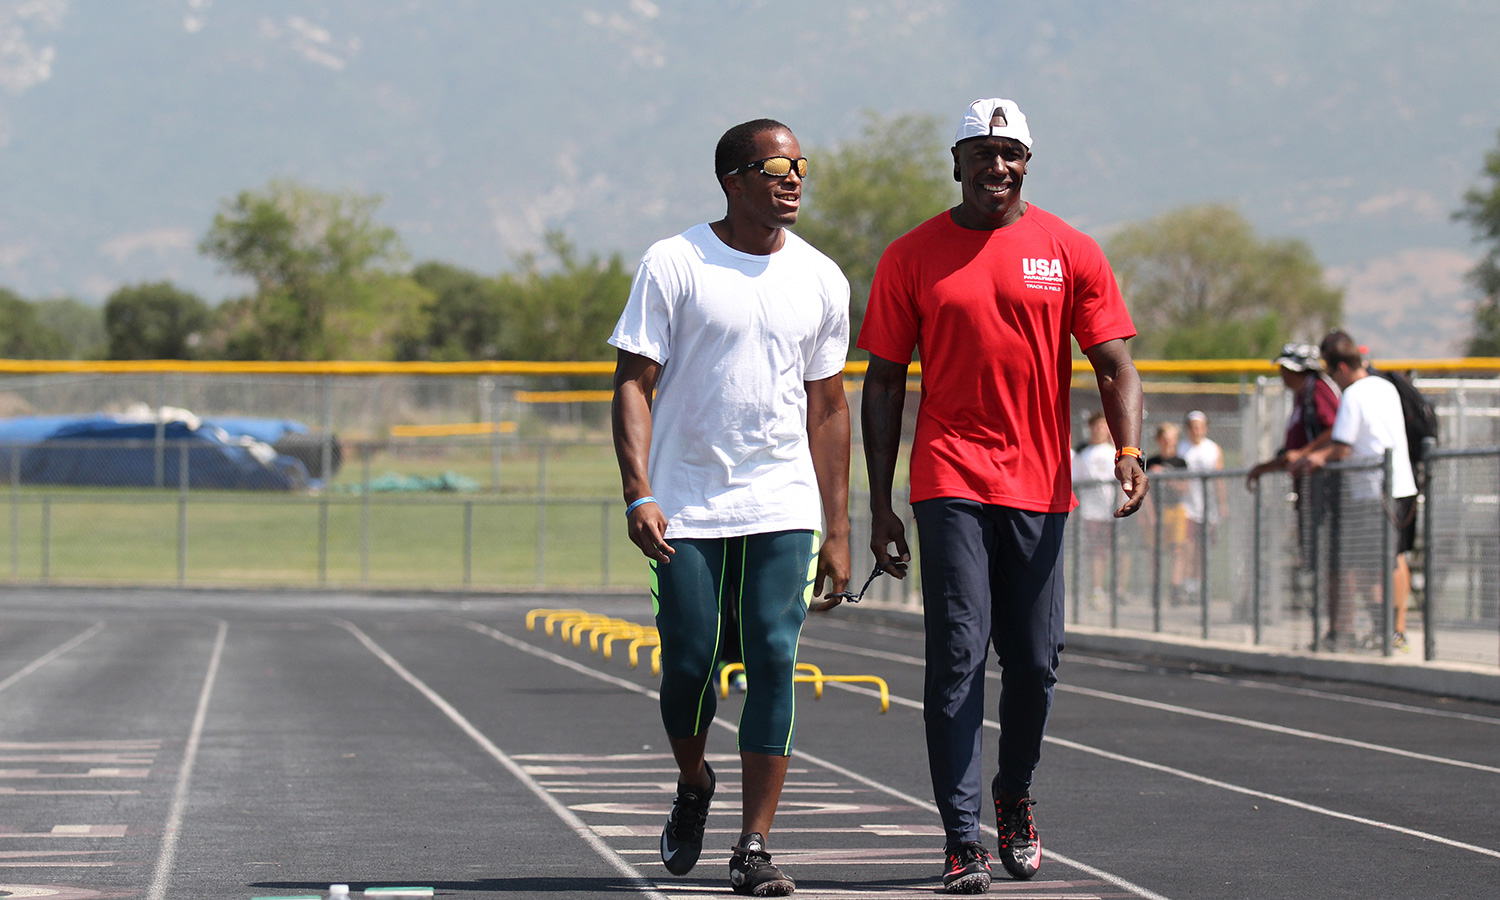 The National Athletic Institute helps Olympic athletes achieve their dreams. David, an NAI athlete, is blind and is the fastest T11 Paralympic sprinter in the world. His story inspires us.